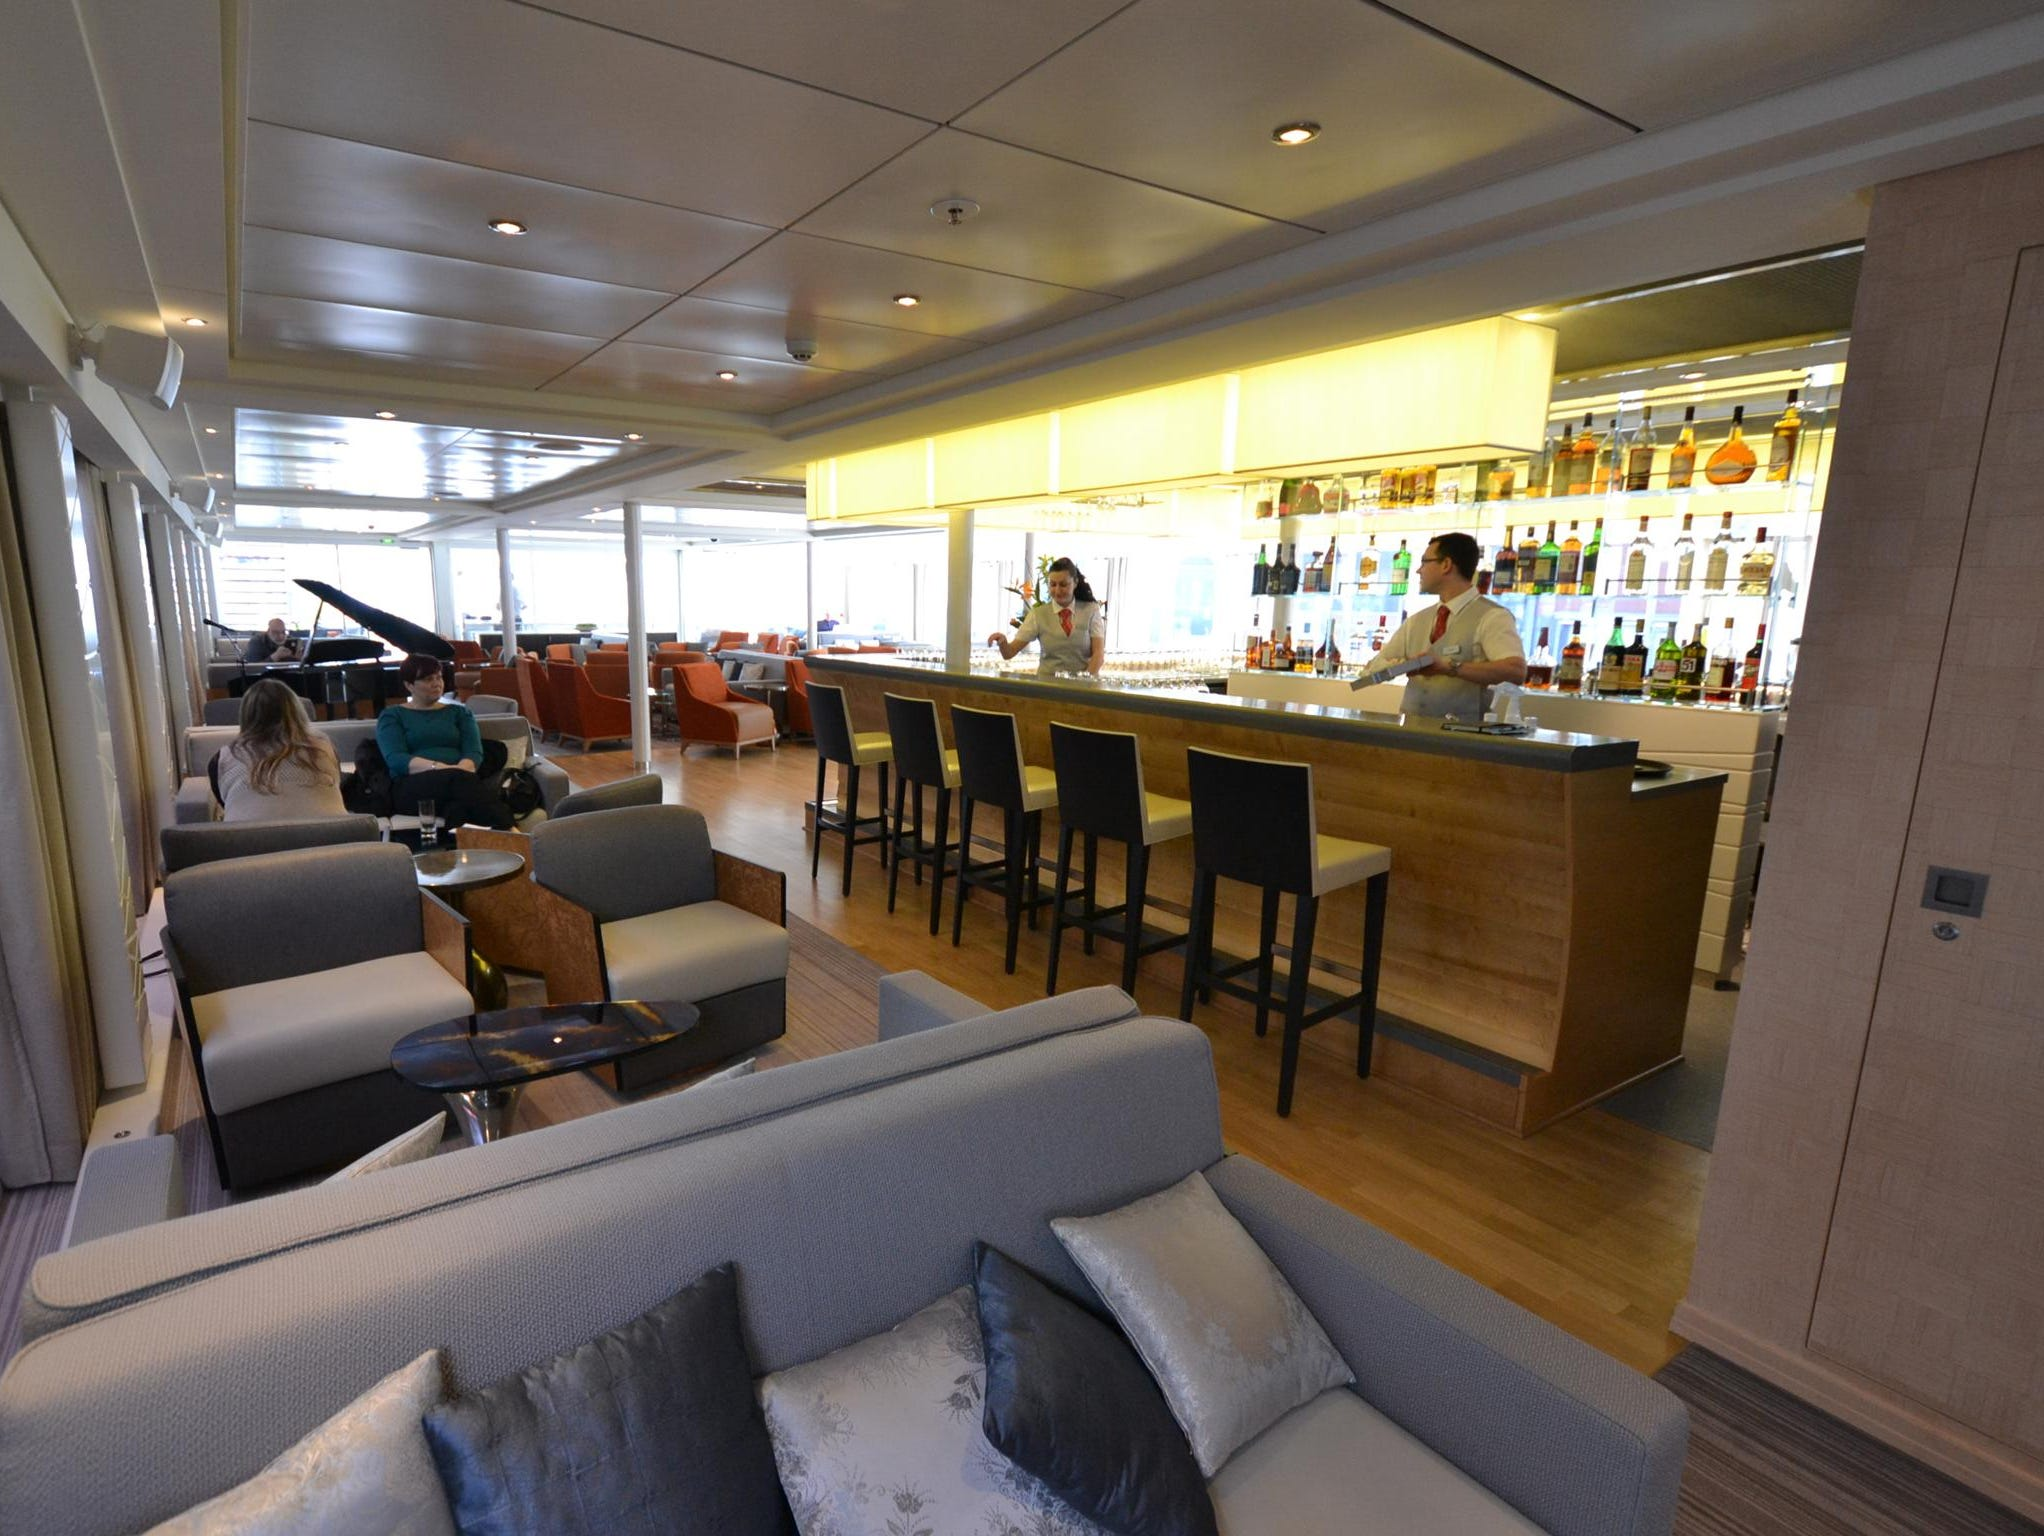 As is typical on river ships in Europe, the Viking Odin has a single large lounge at the front of its highest passenger deck that serves as a central gathering place for passengers.